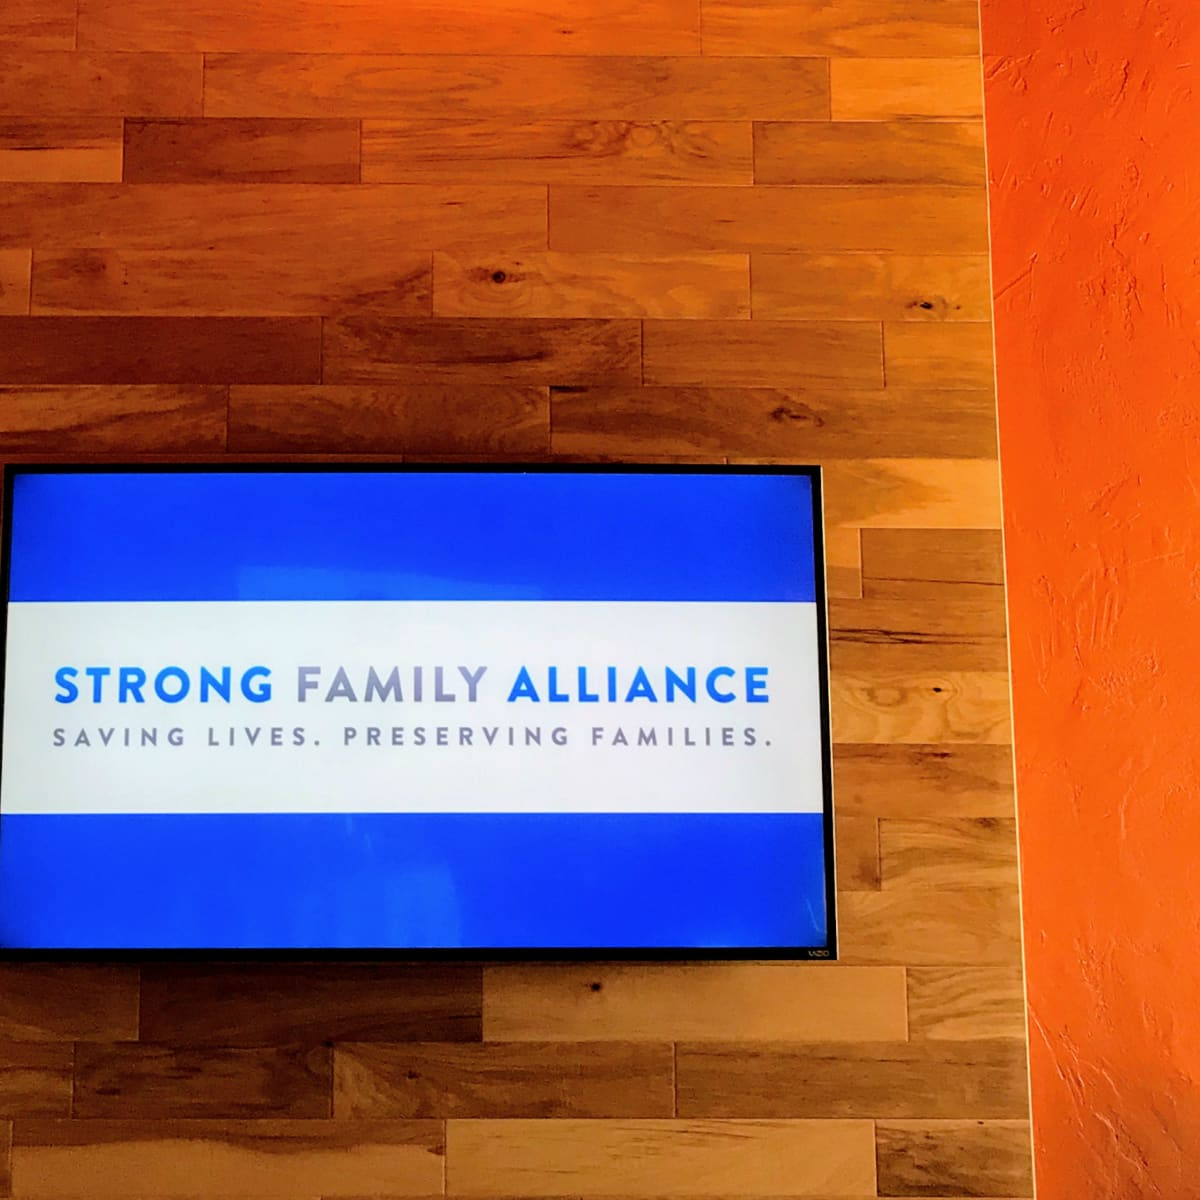 Strong Family Alliance launch event